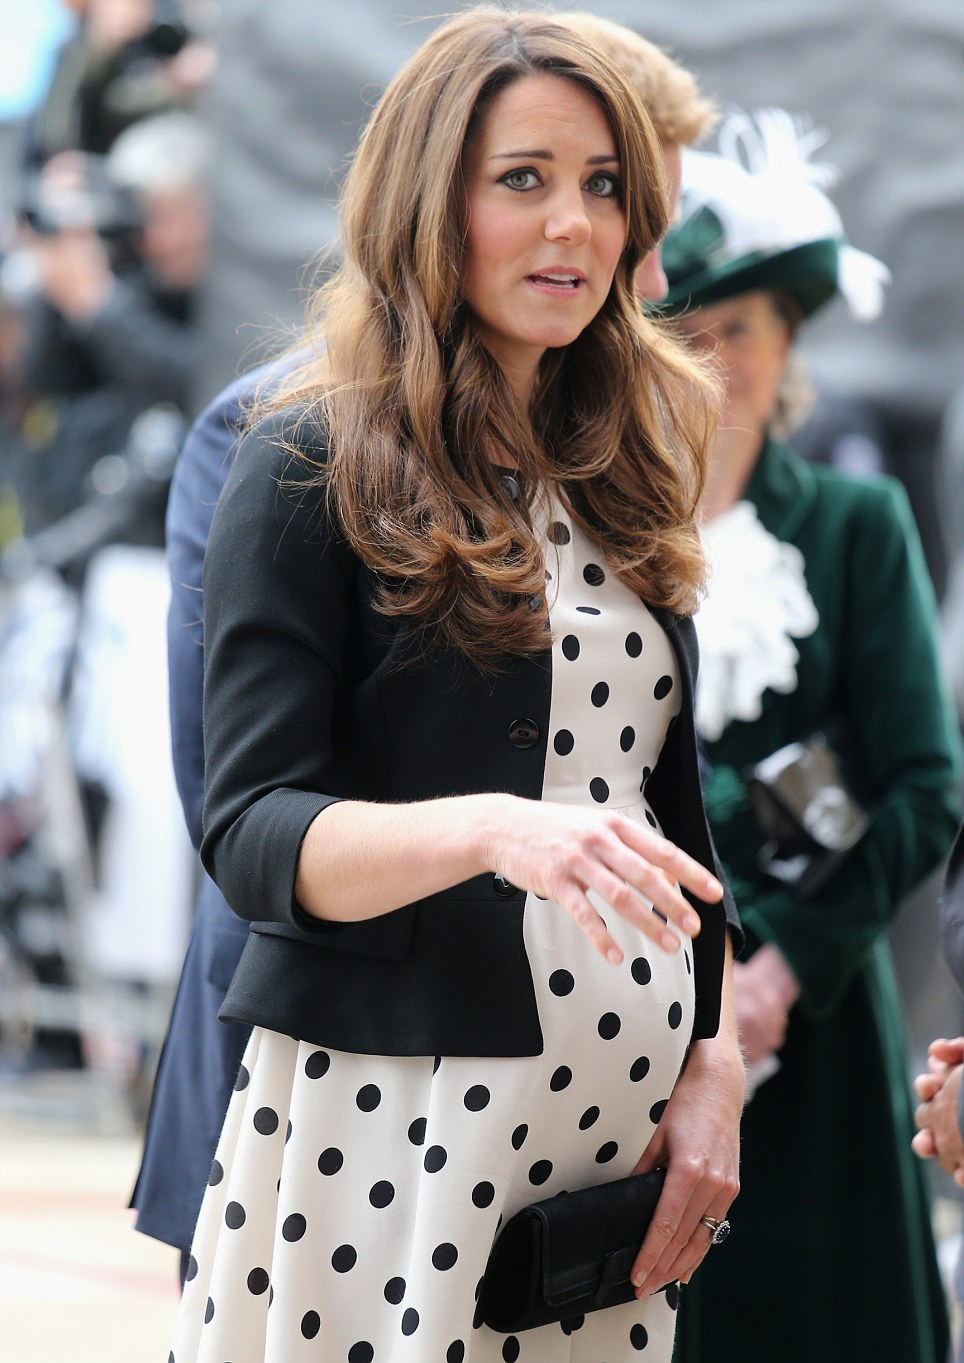 Top fashion designers sketch maternity dresses for kate middleton top fashion designers sketch maternity dresses for kate middleton ombrellifo Gallery